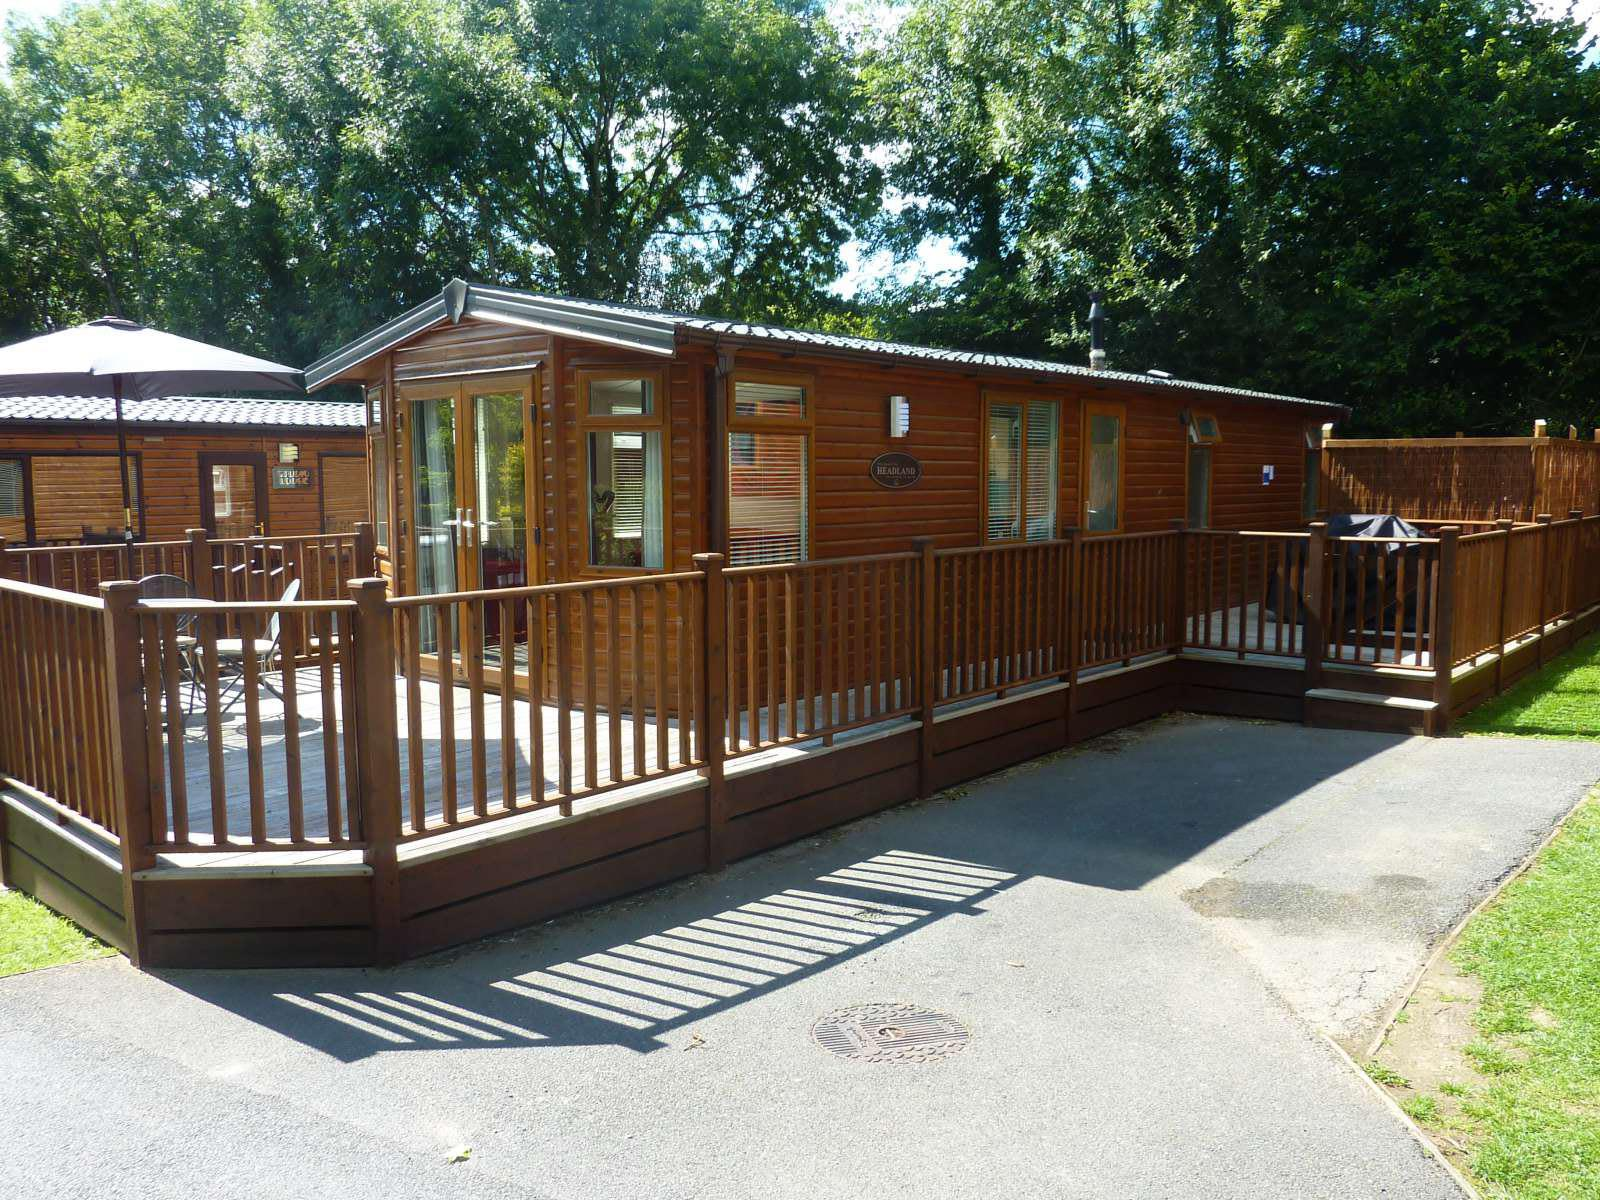 2 Bed (Sleeps 6) Lodge in Newton Abbot - No Booking Fees